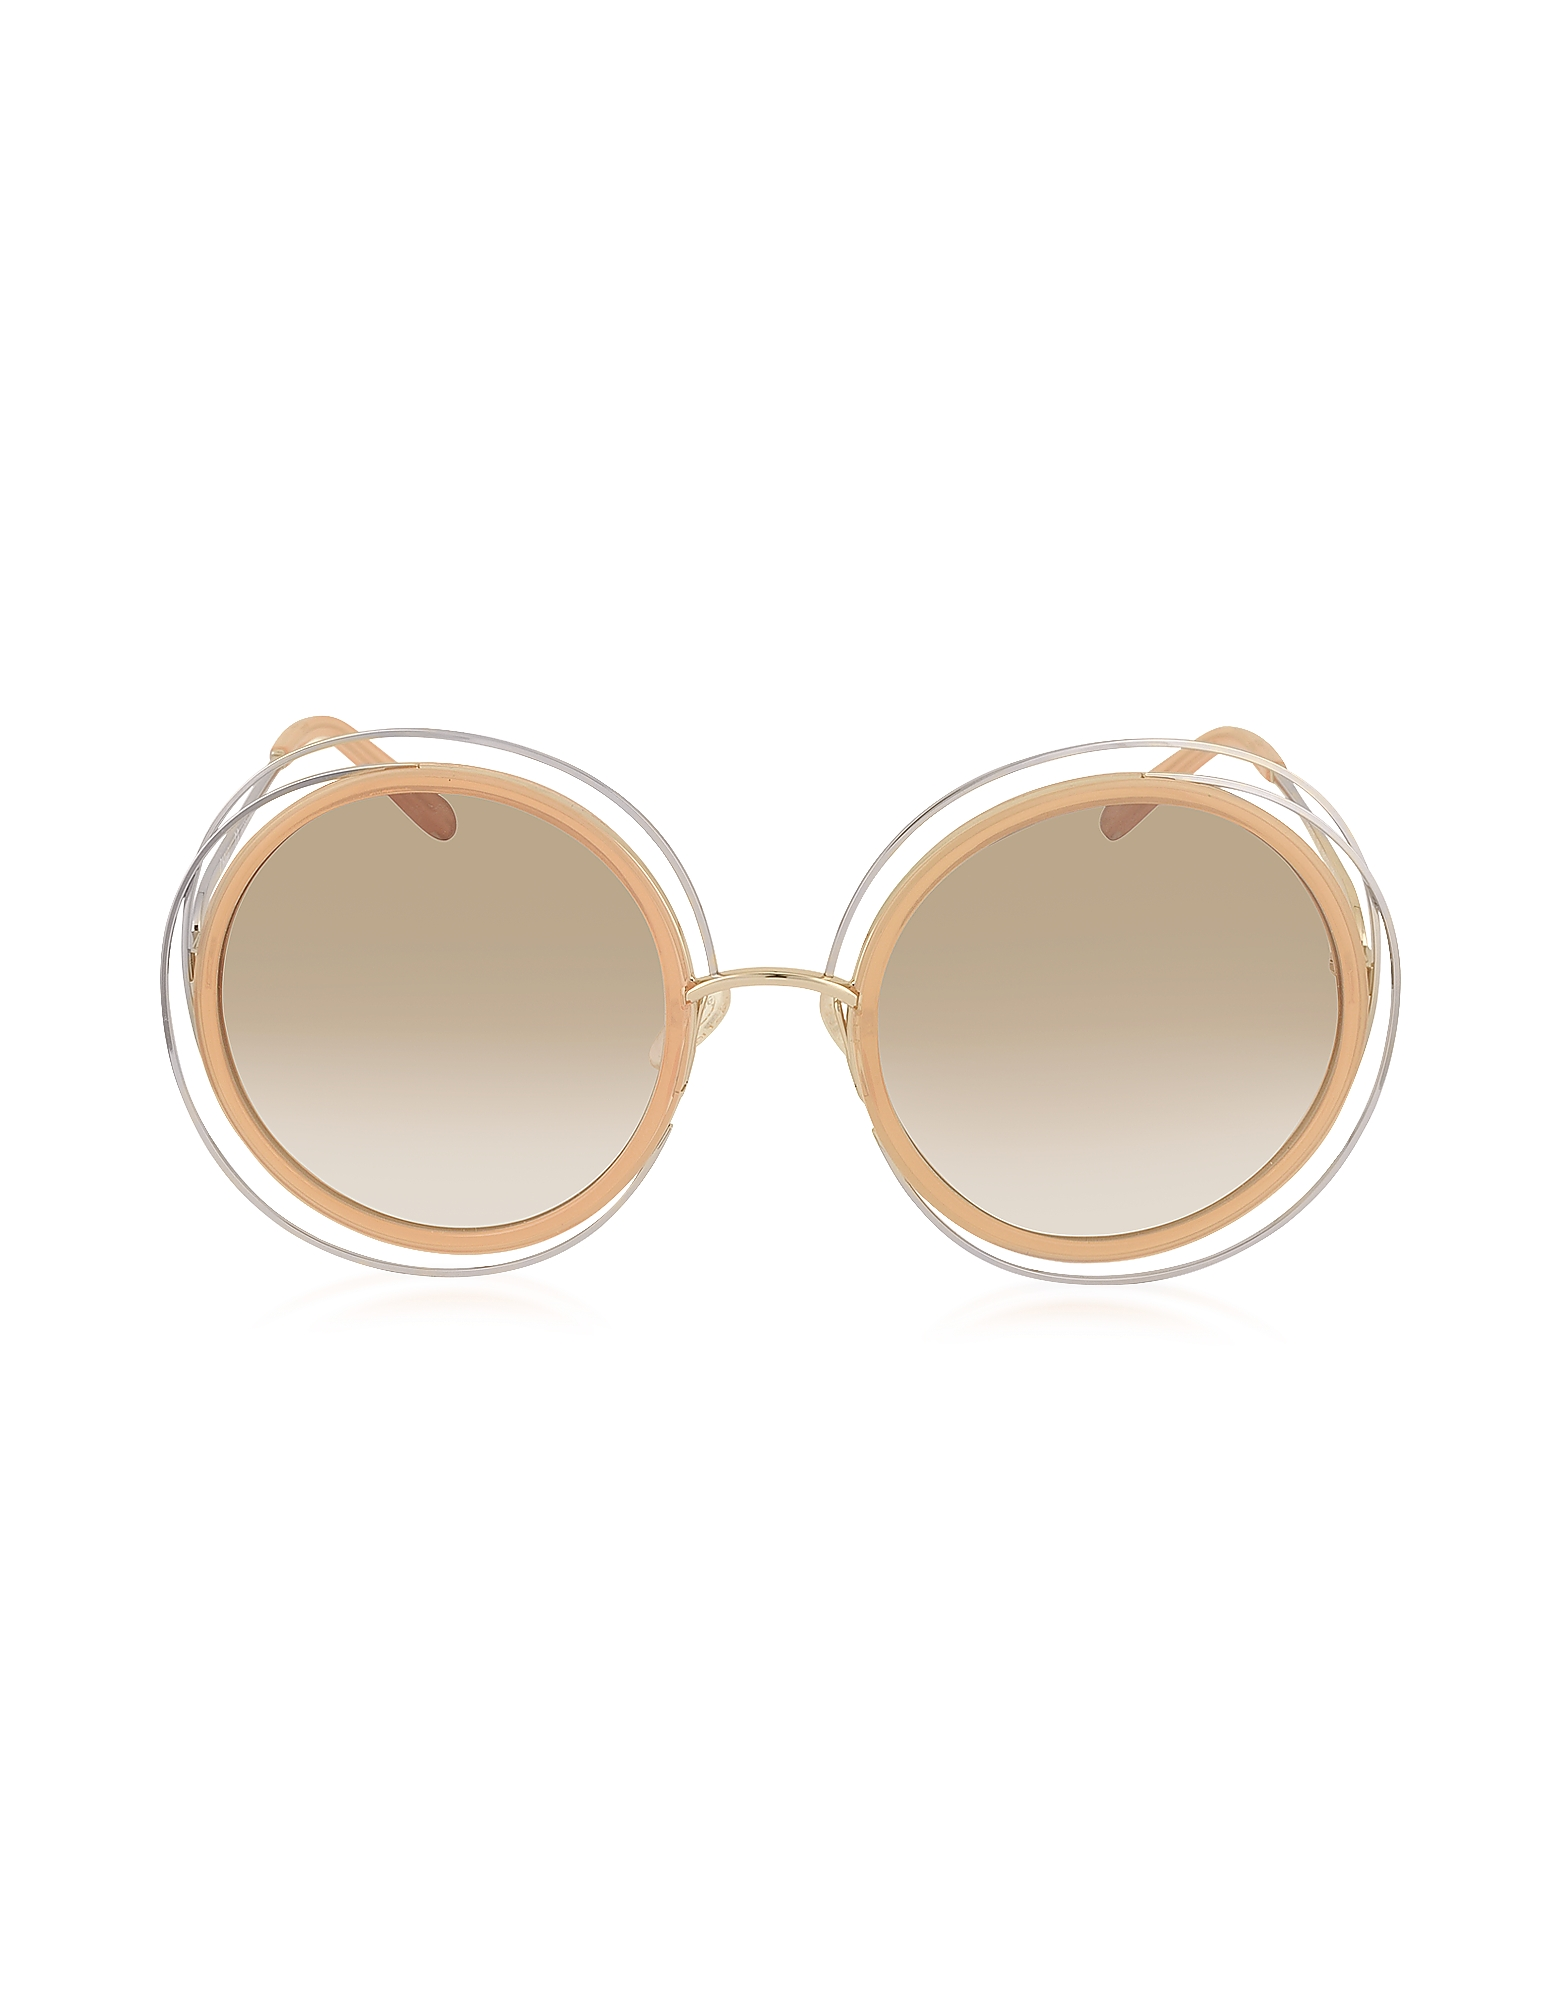 Chloe Sunglasses, CARLINA CE 120S Round Oversized Acetate & Metal Women's Sunglasses